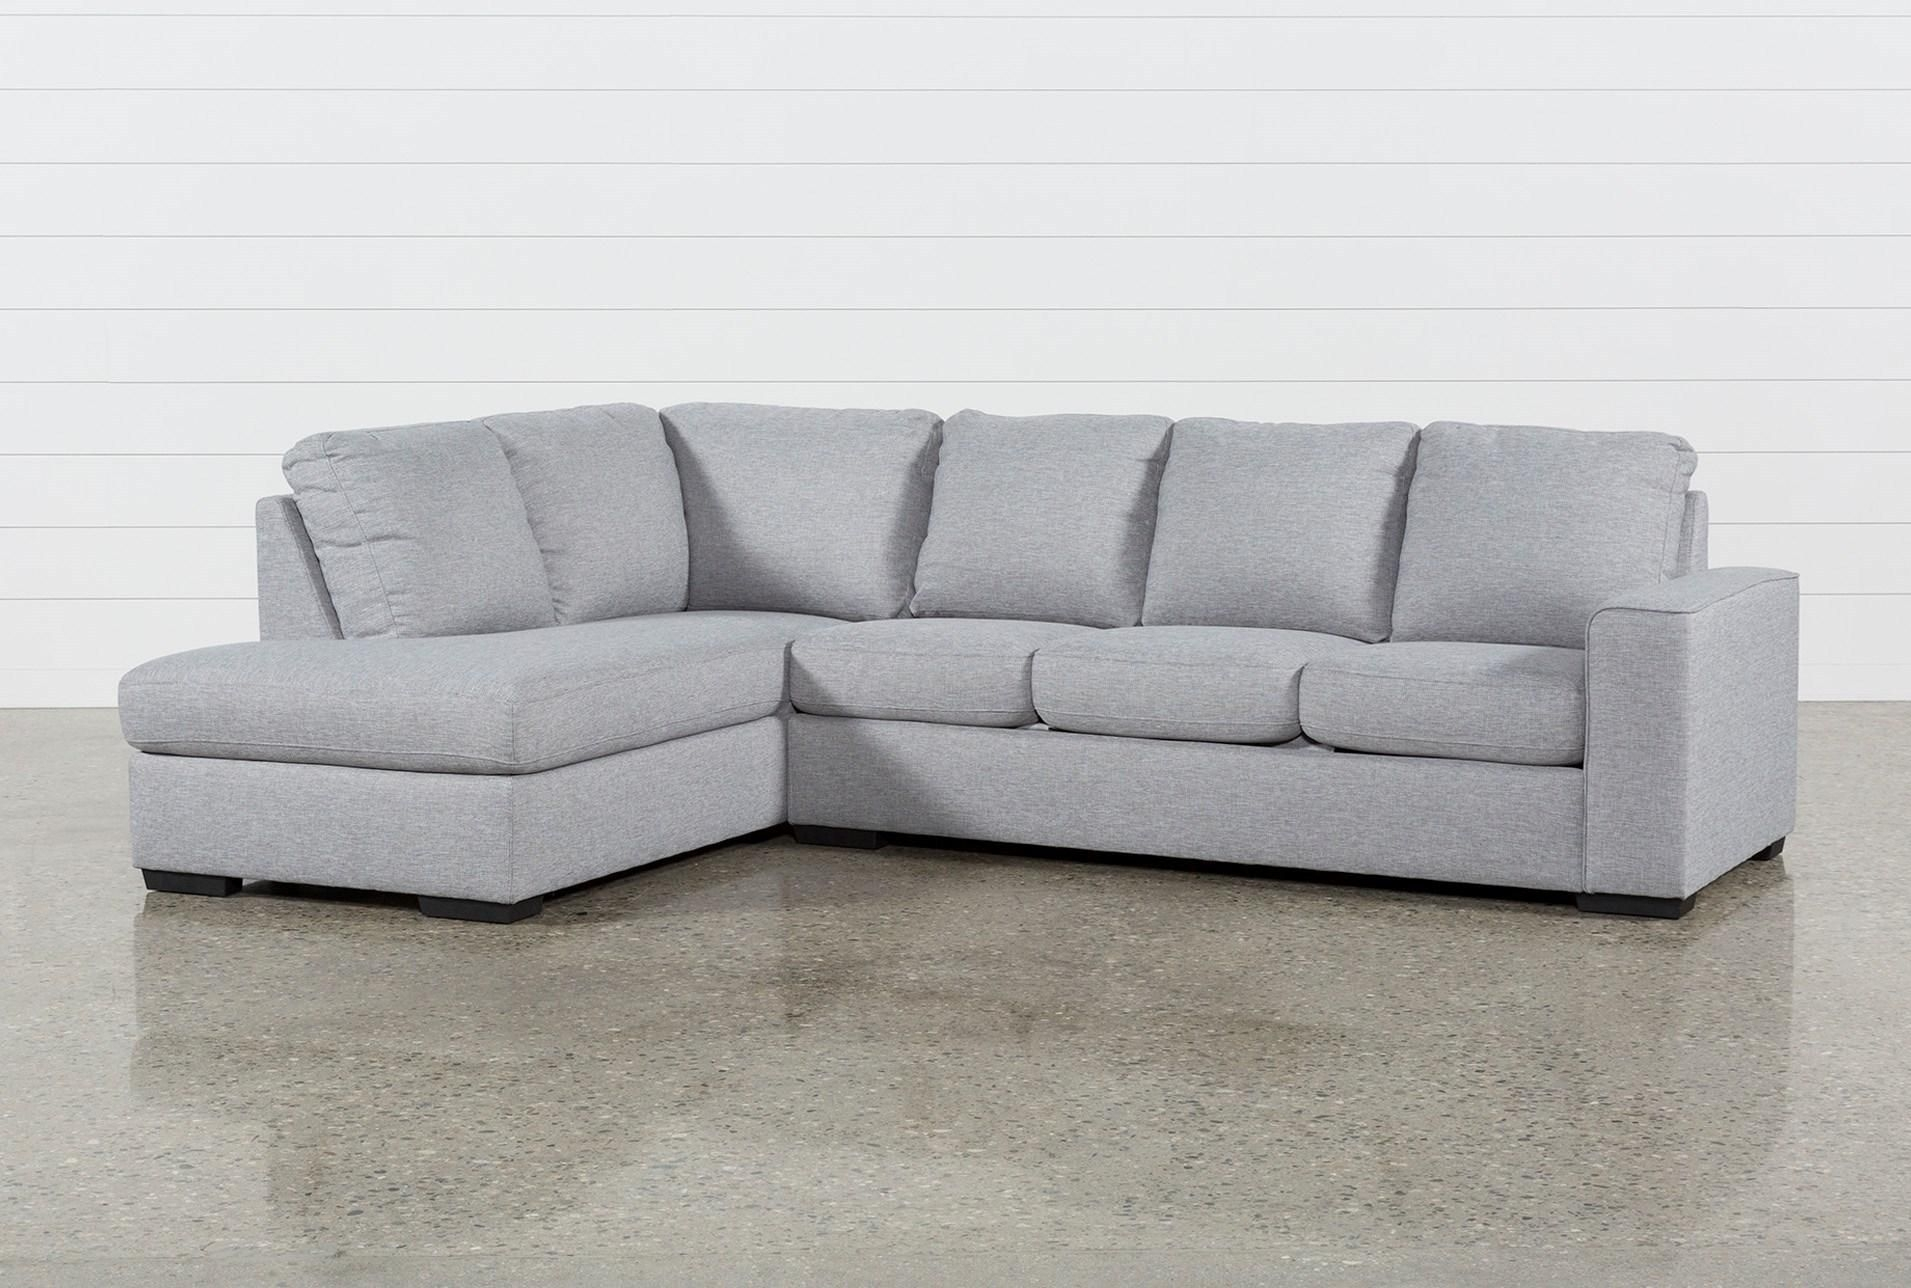 Lucy Grey 2 Piece Sectional W/laf Chaise | Things I Want To Get Or with regard to Lucy Grey 2 Piece Sleeper Sectionals With Raf Chaise (Image 20 of 30)